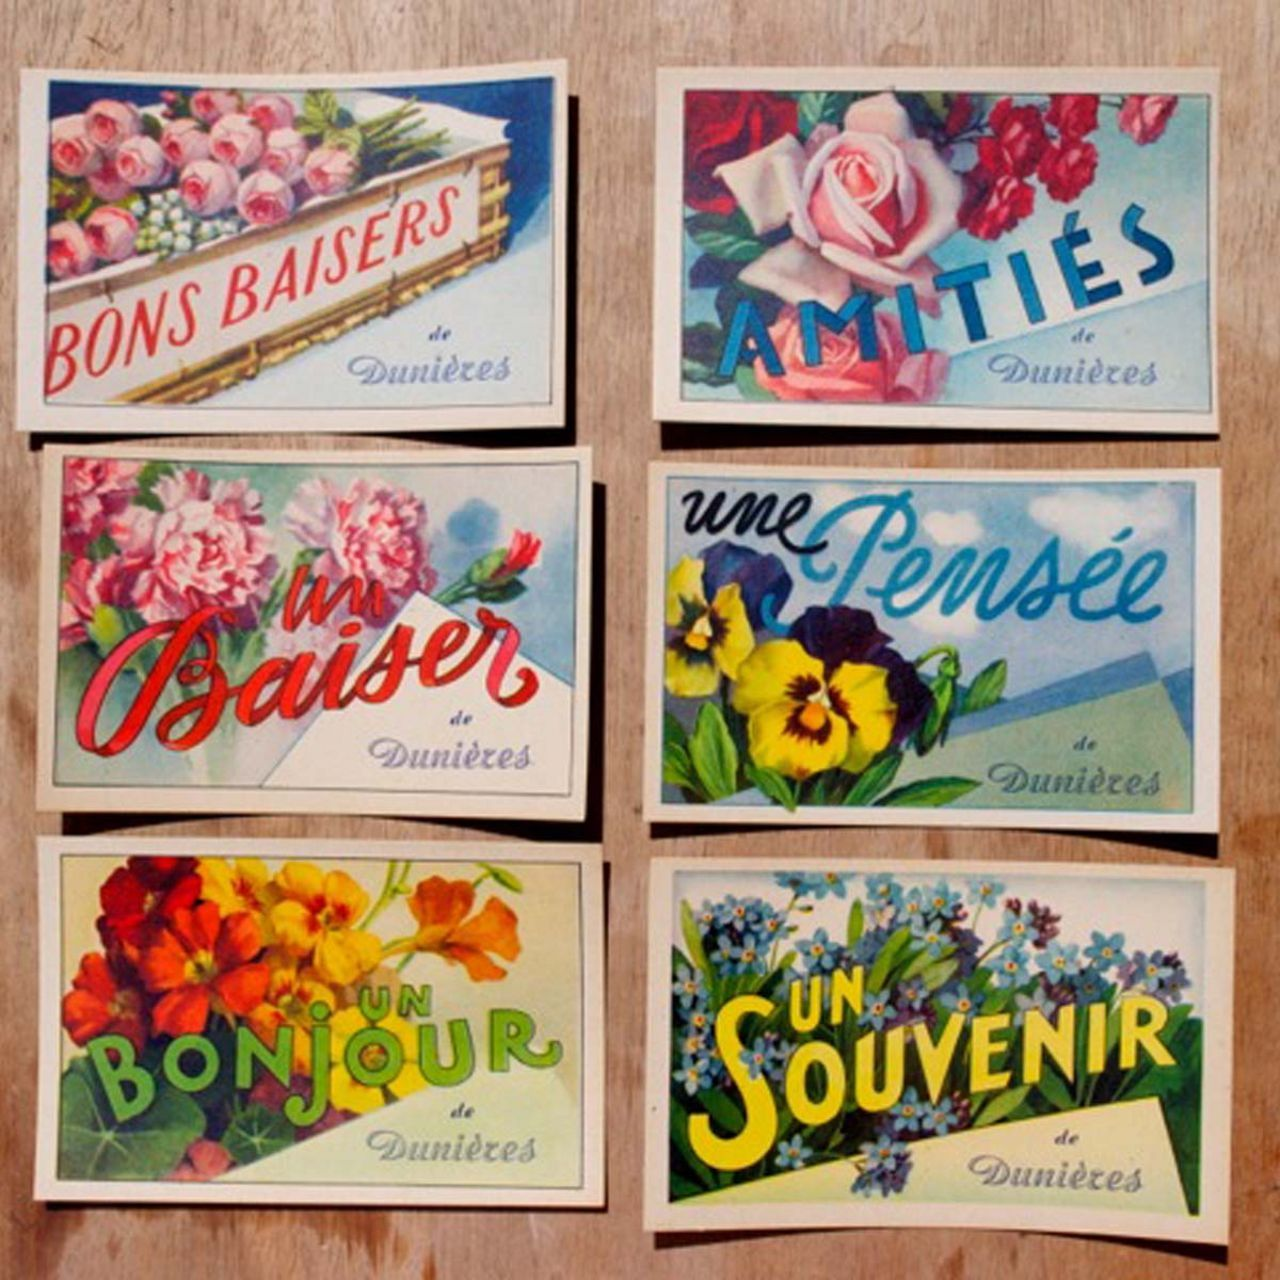 1930s postcards from the Loire